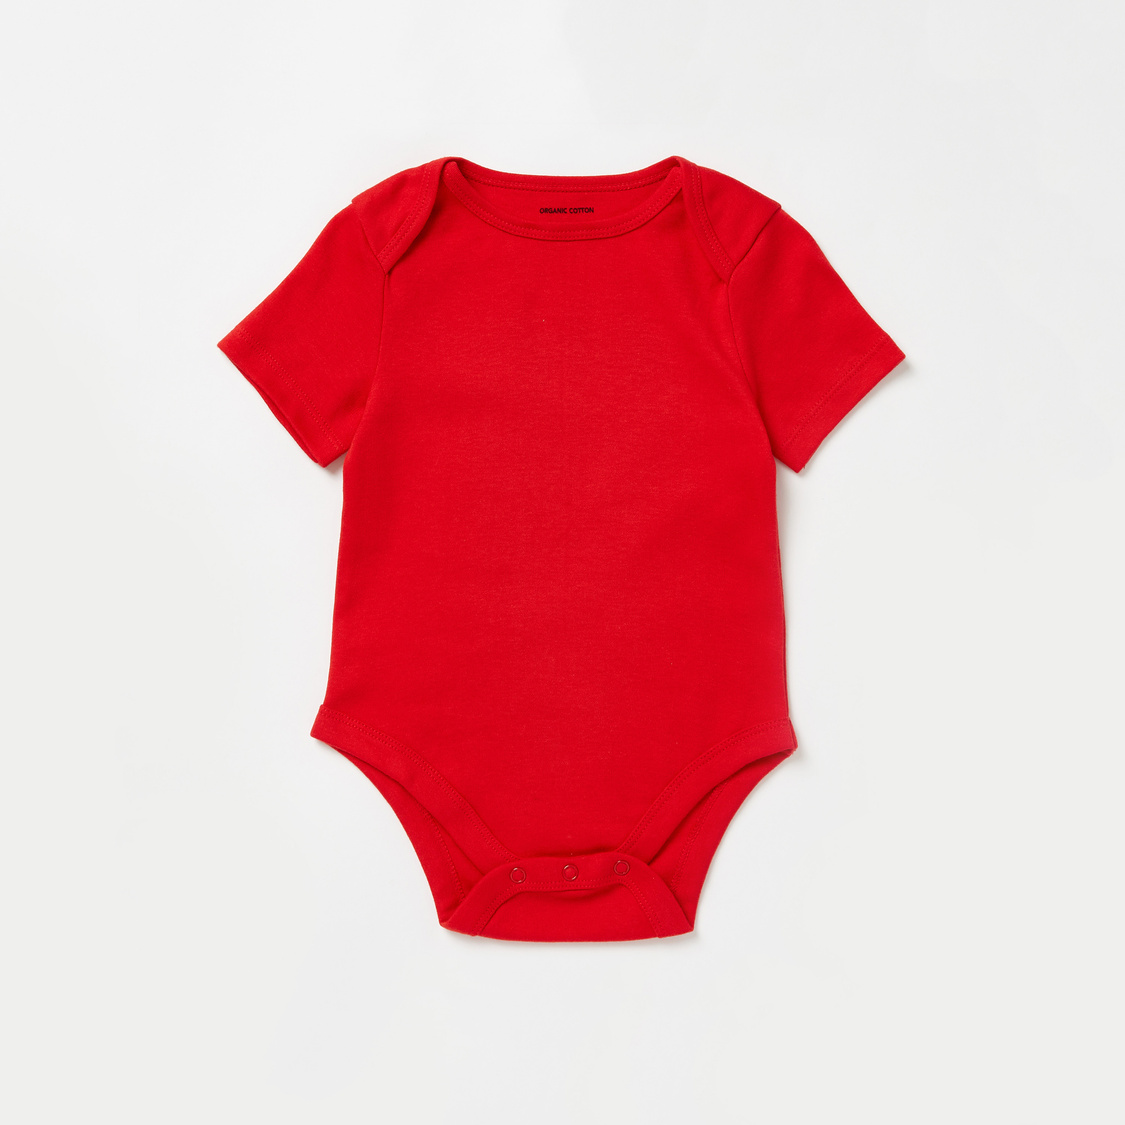 Pack of 7 - Printed Bodysuit with Round Neck and Short Sleeves